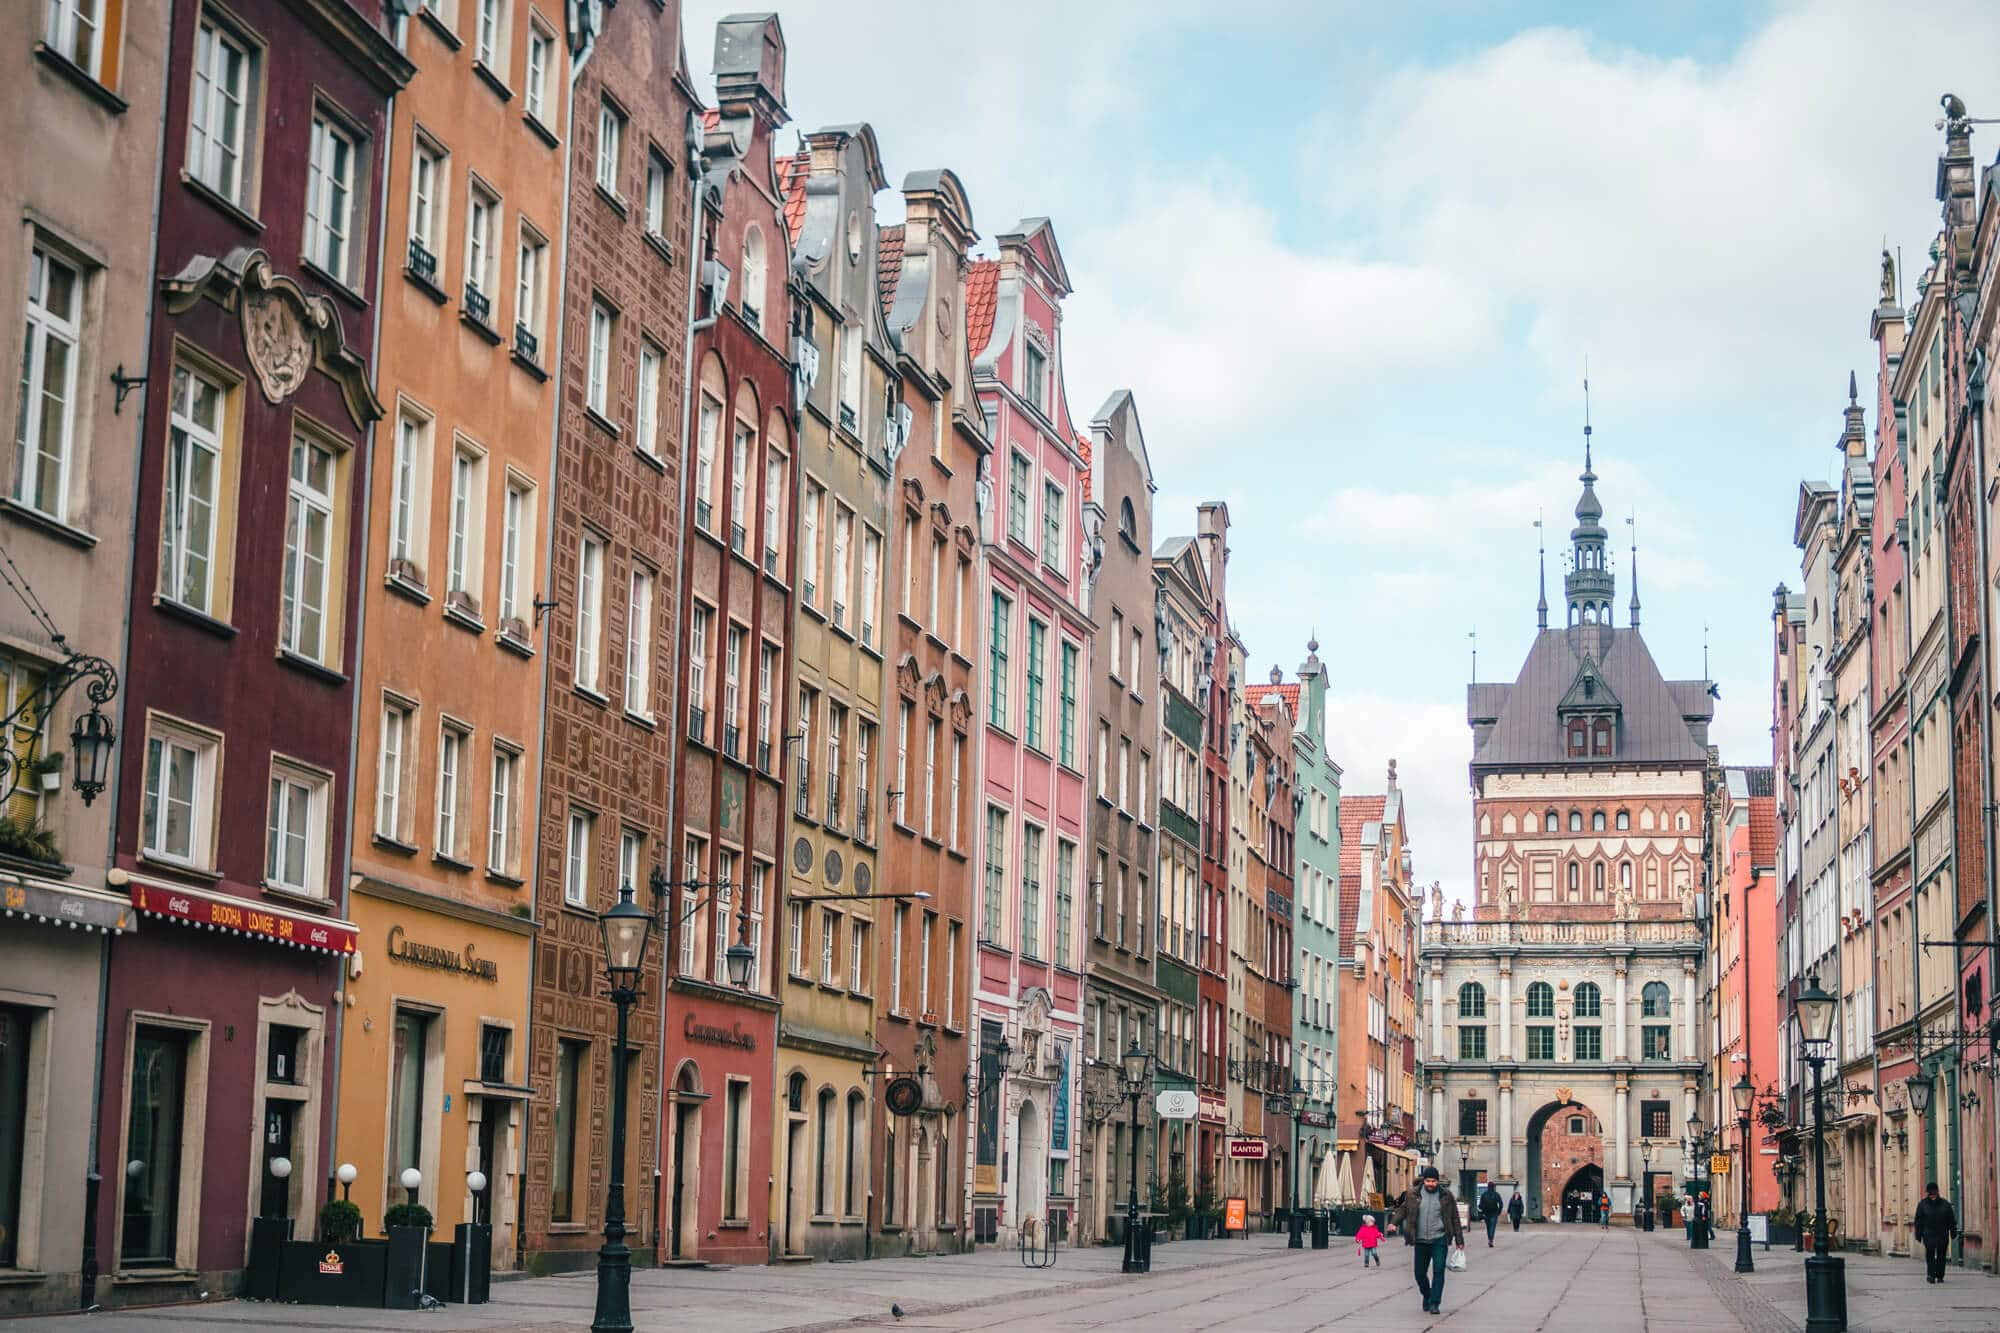 2 days in Gdansk, Poland - Take a stroll down Long Street towards the Golden Gate